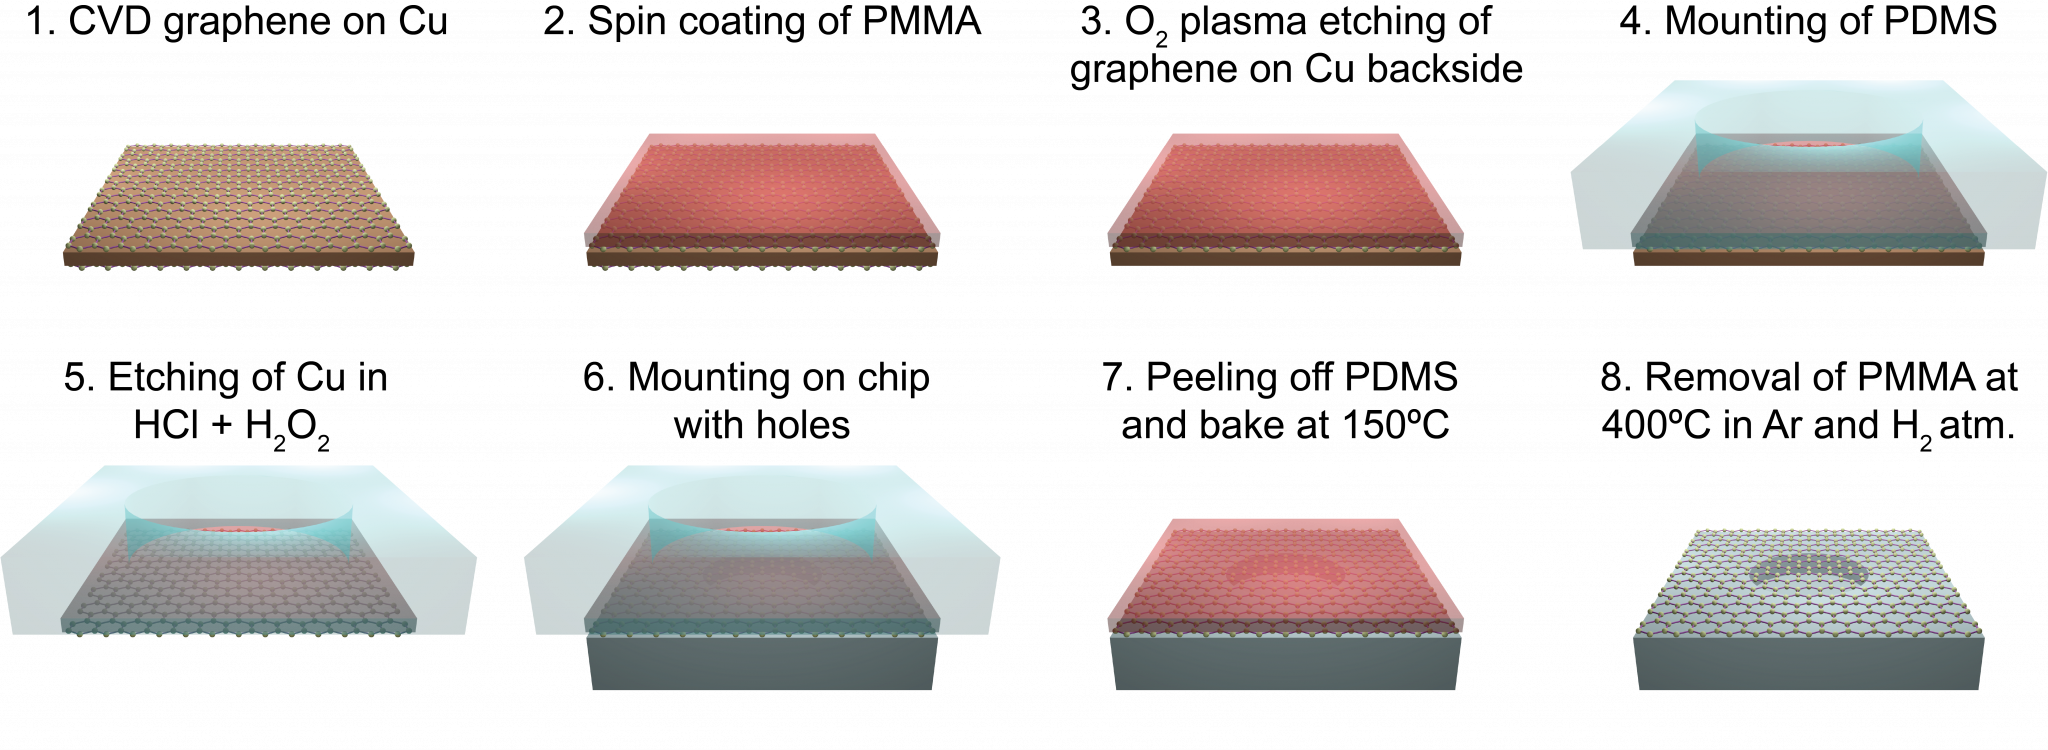 Fabrication graphene resonators